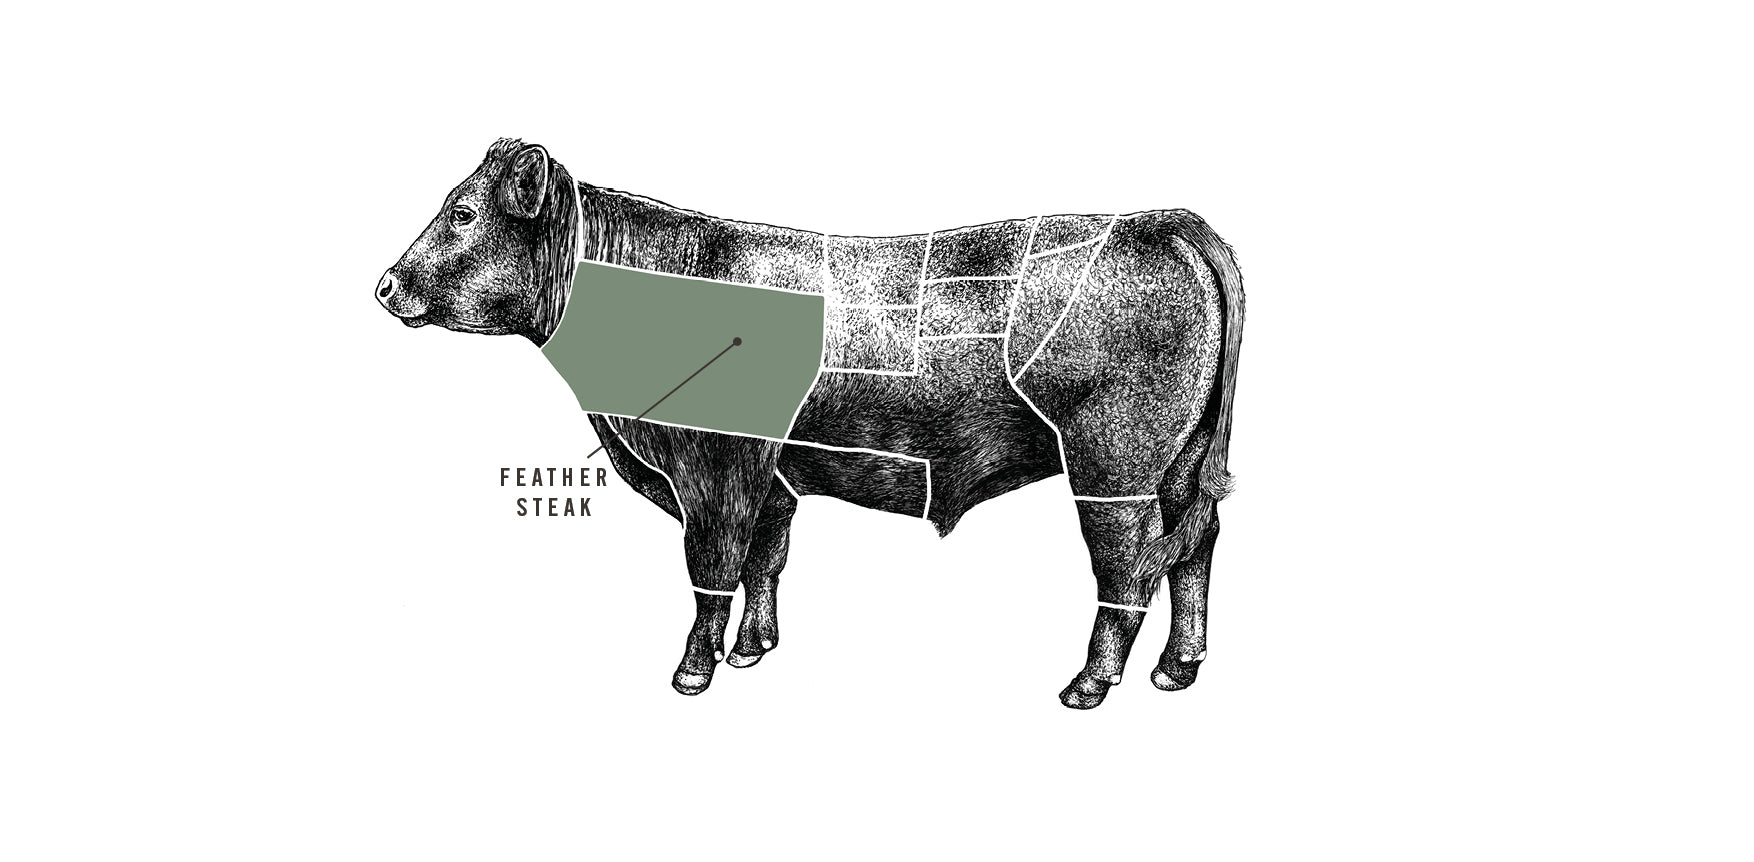 Grass fed Beef Feather Steak meat cuts diagram